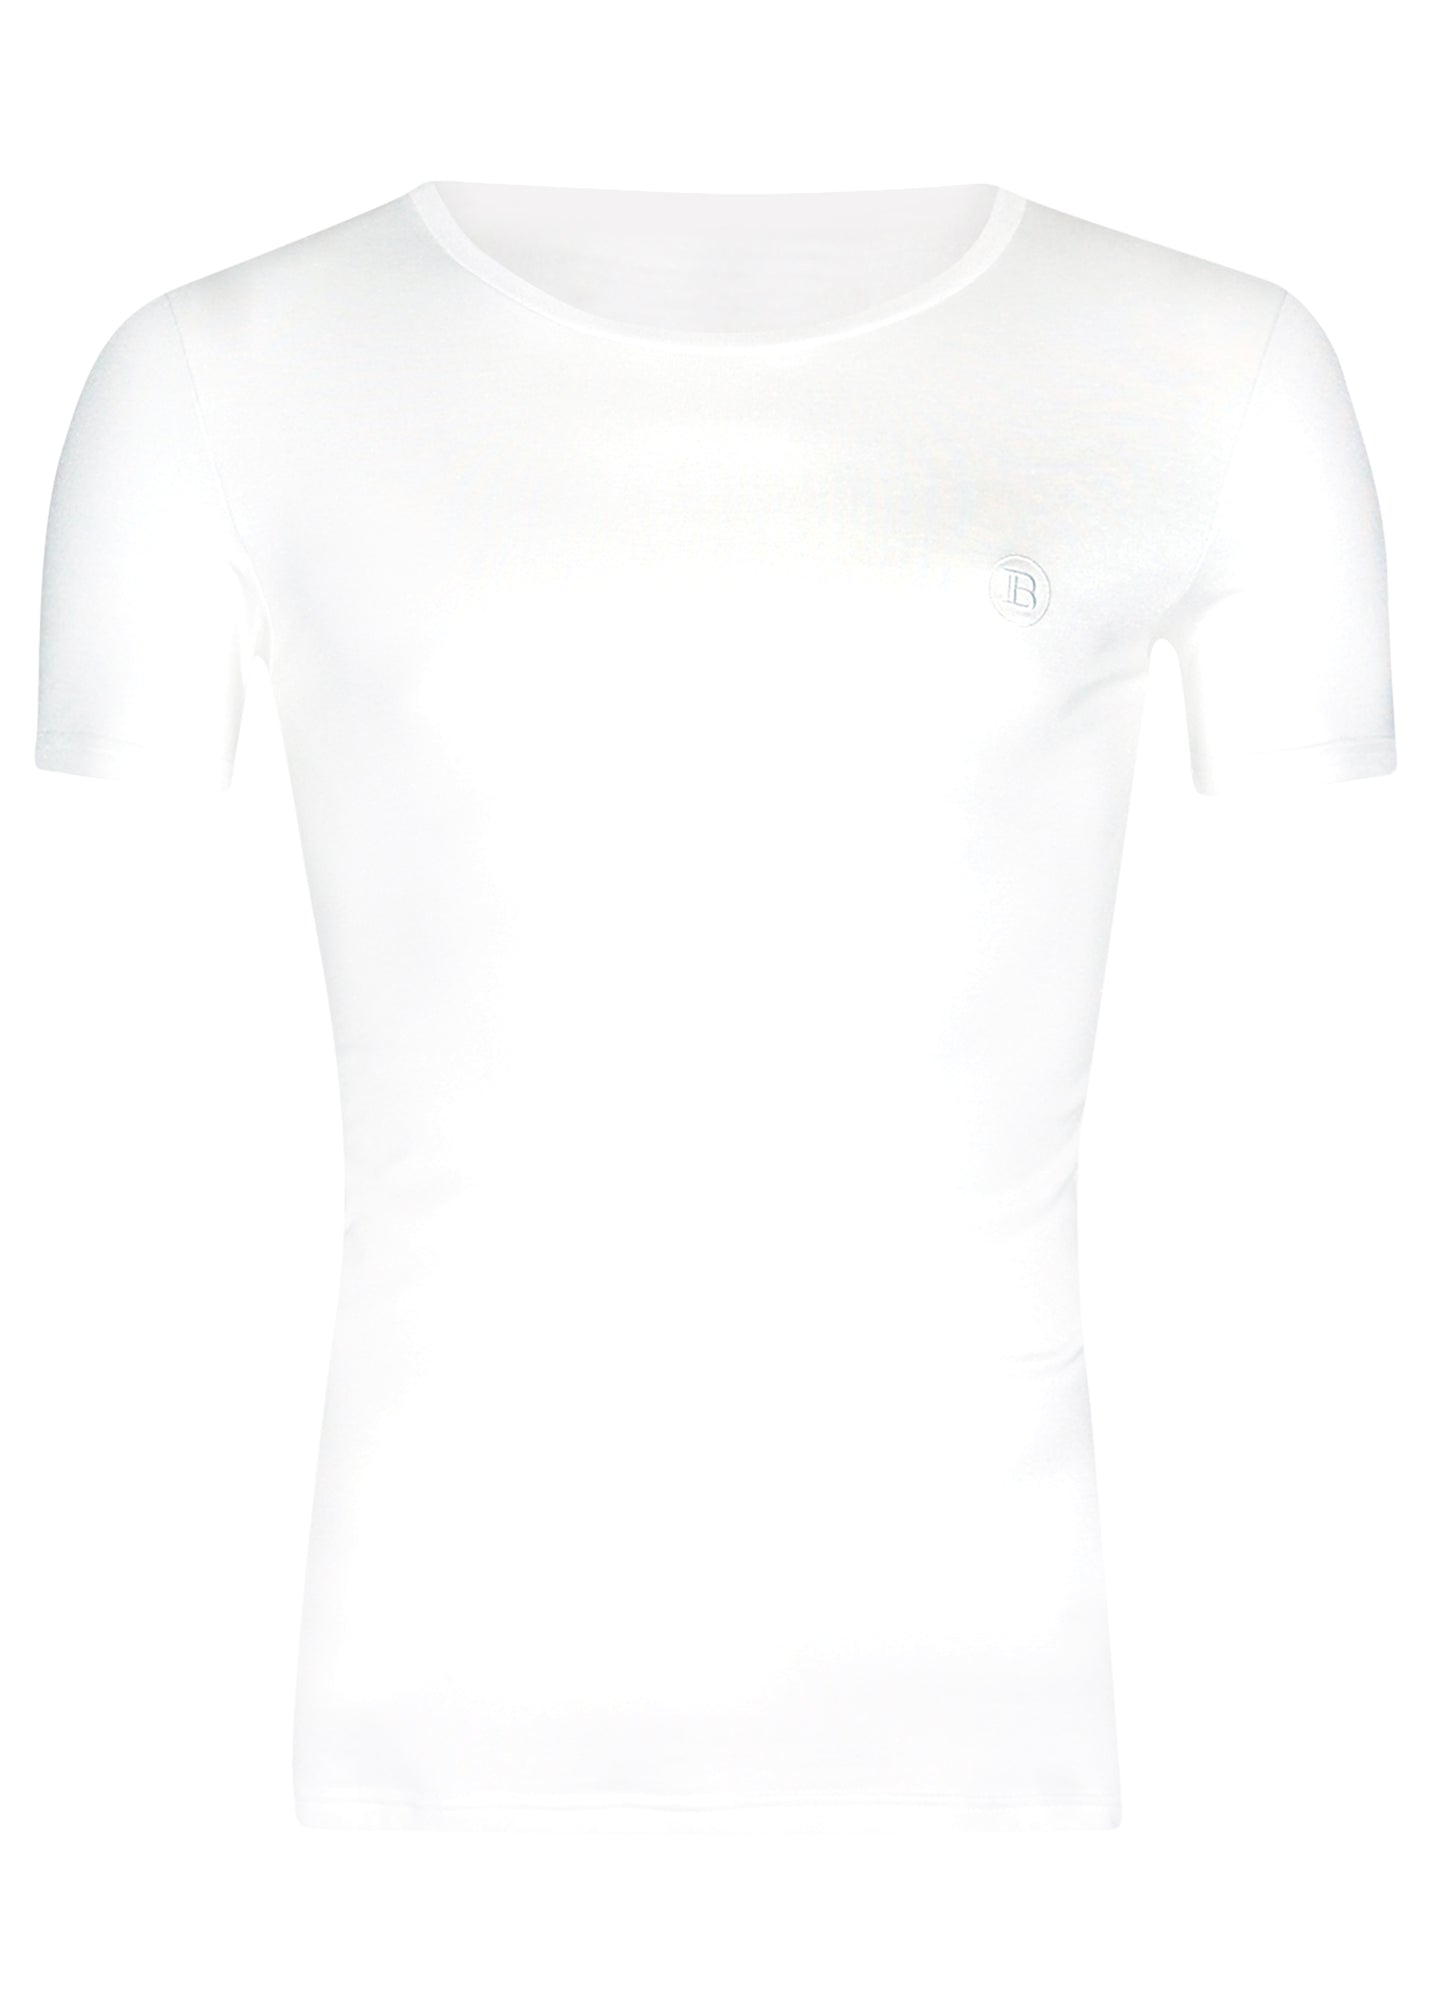 Balmain - Crewneck Short Sleeve  T Shirt Self Embroidered B on Chest Balmain PARIS on Back - 099034 - White